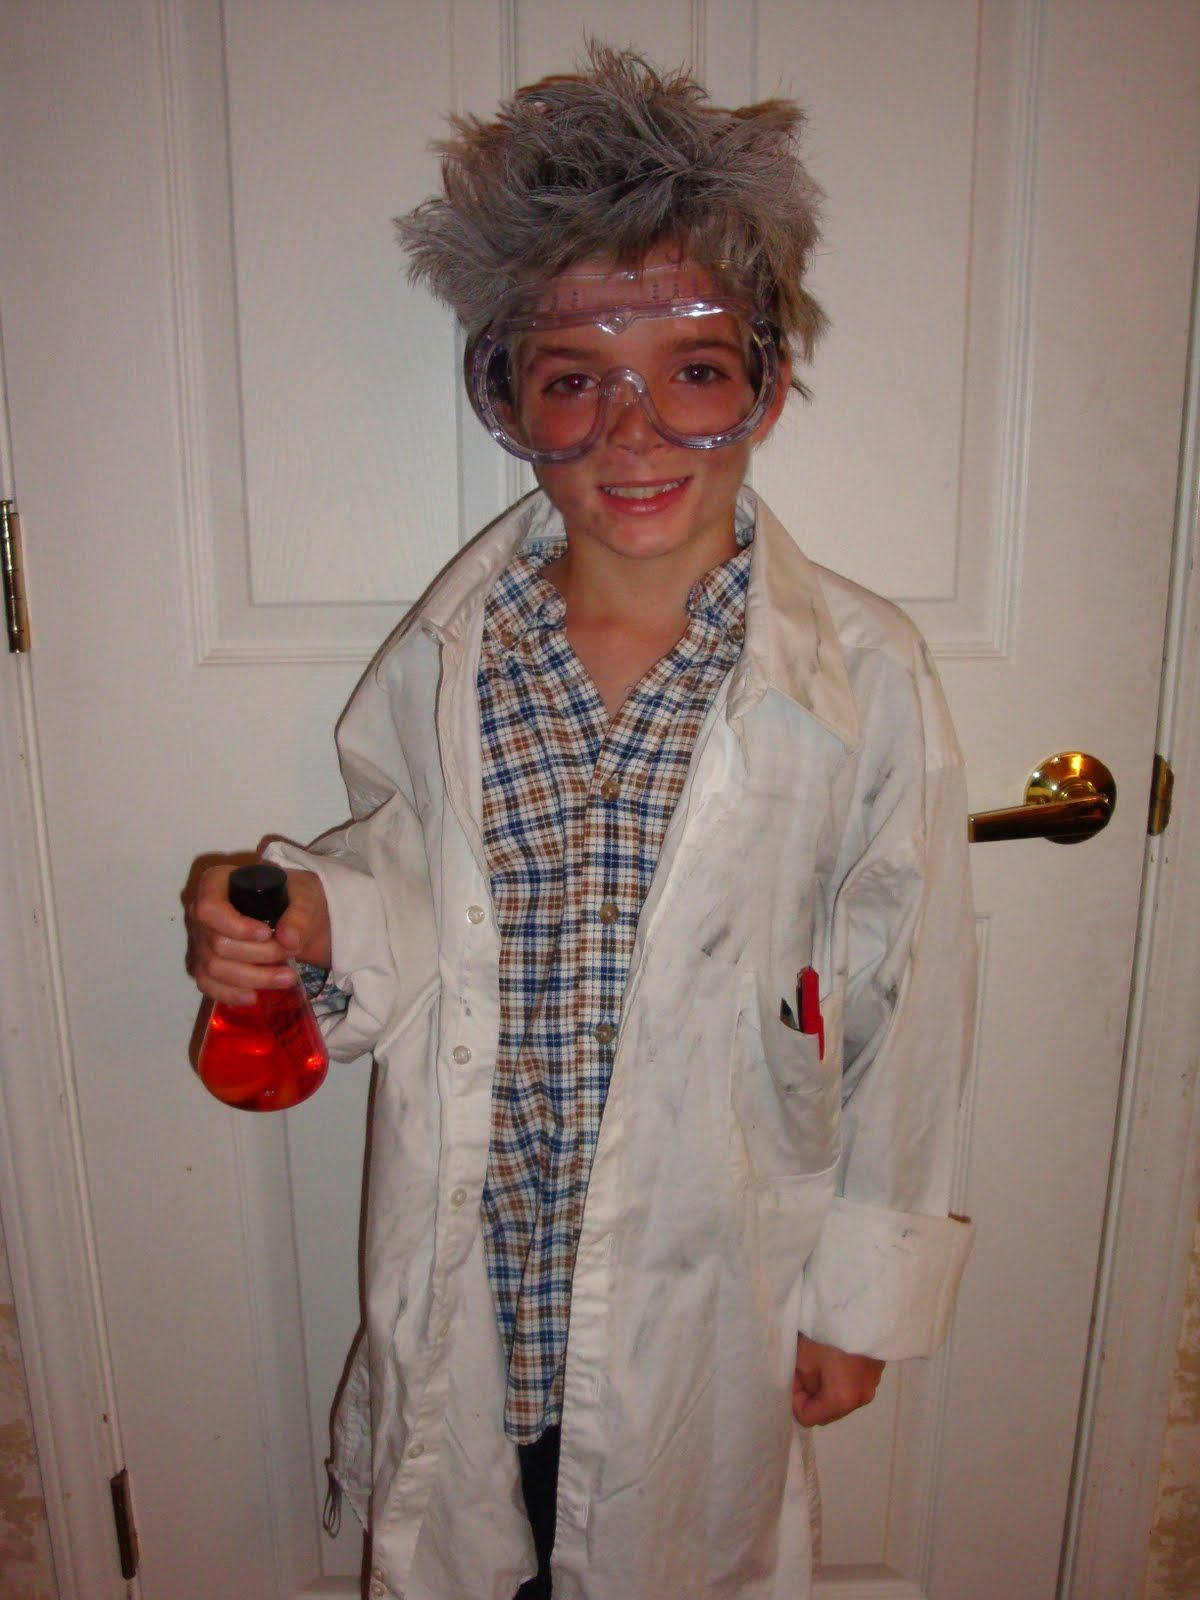 unique halloween costume ideas looking for unique halloween costume ideas try dressing up as - Unique Boy Halloween Costume Ideas